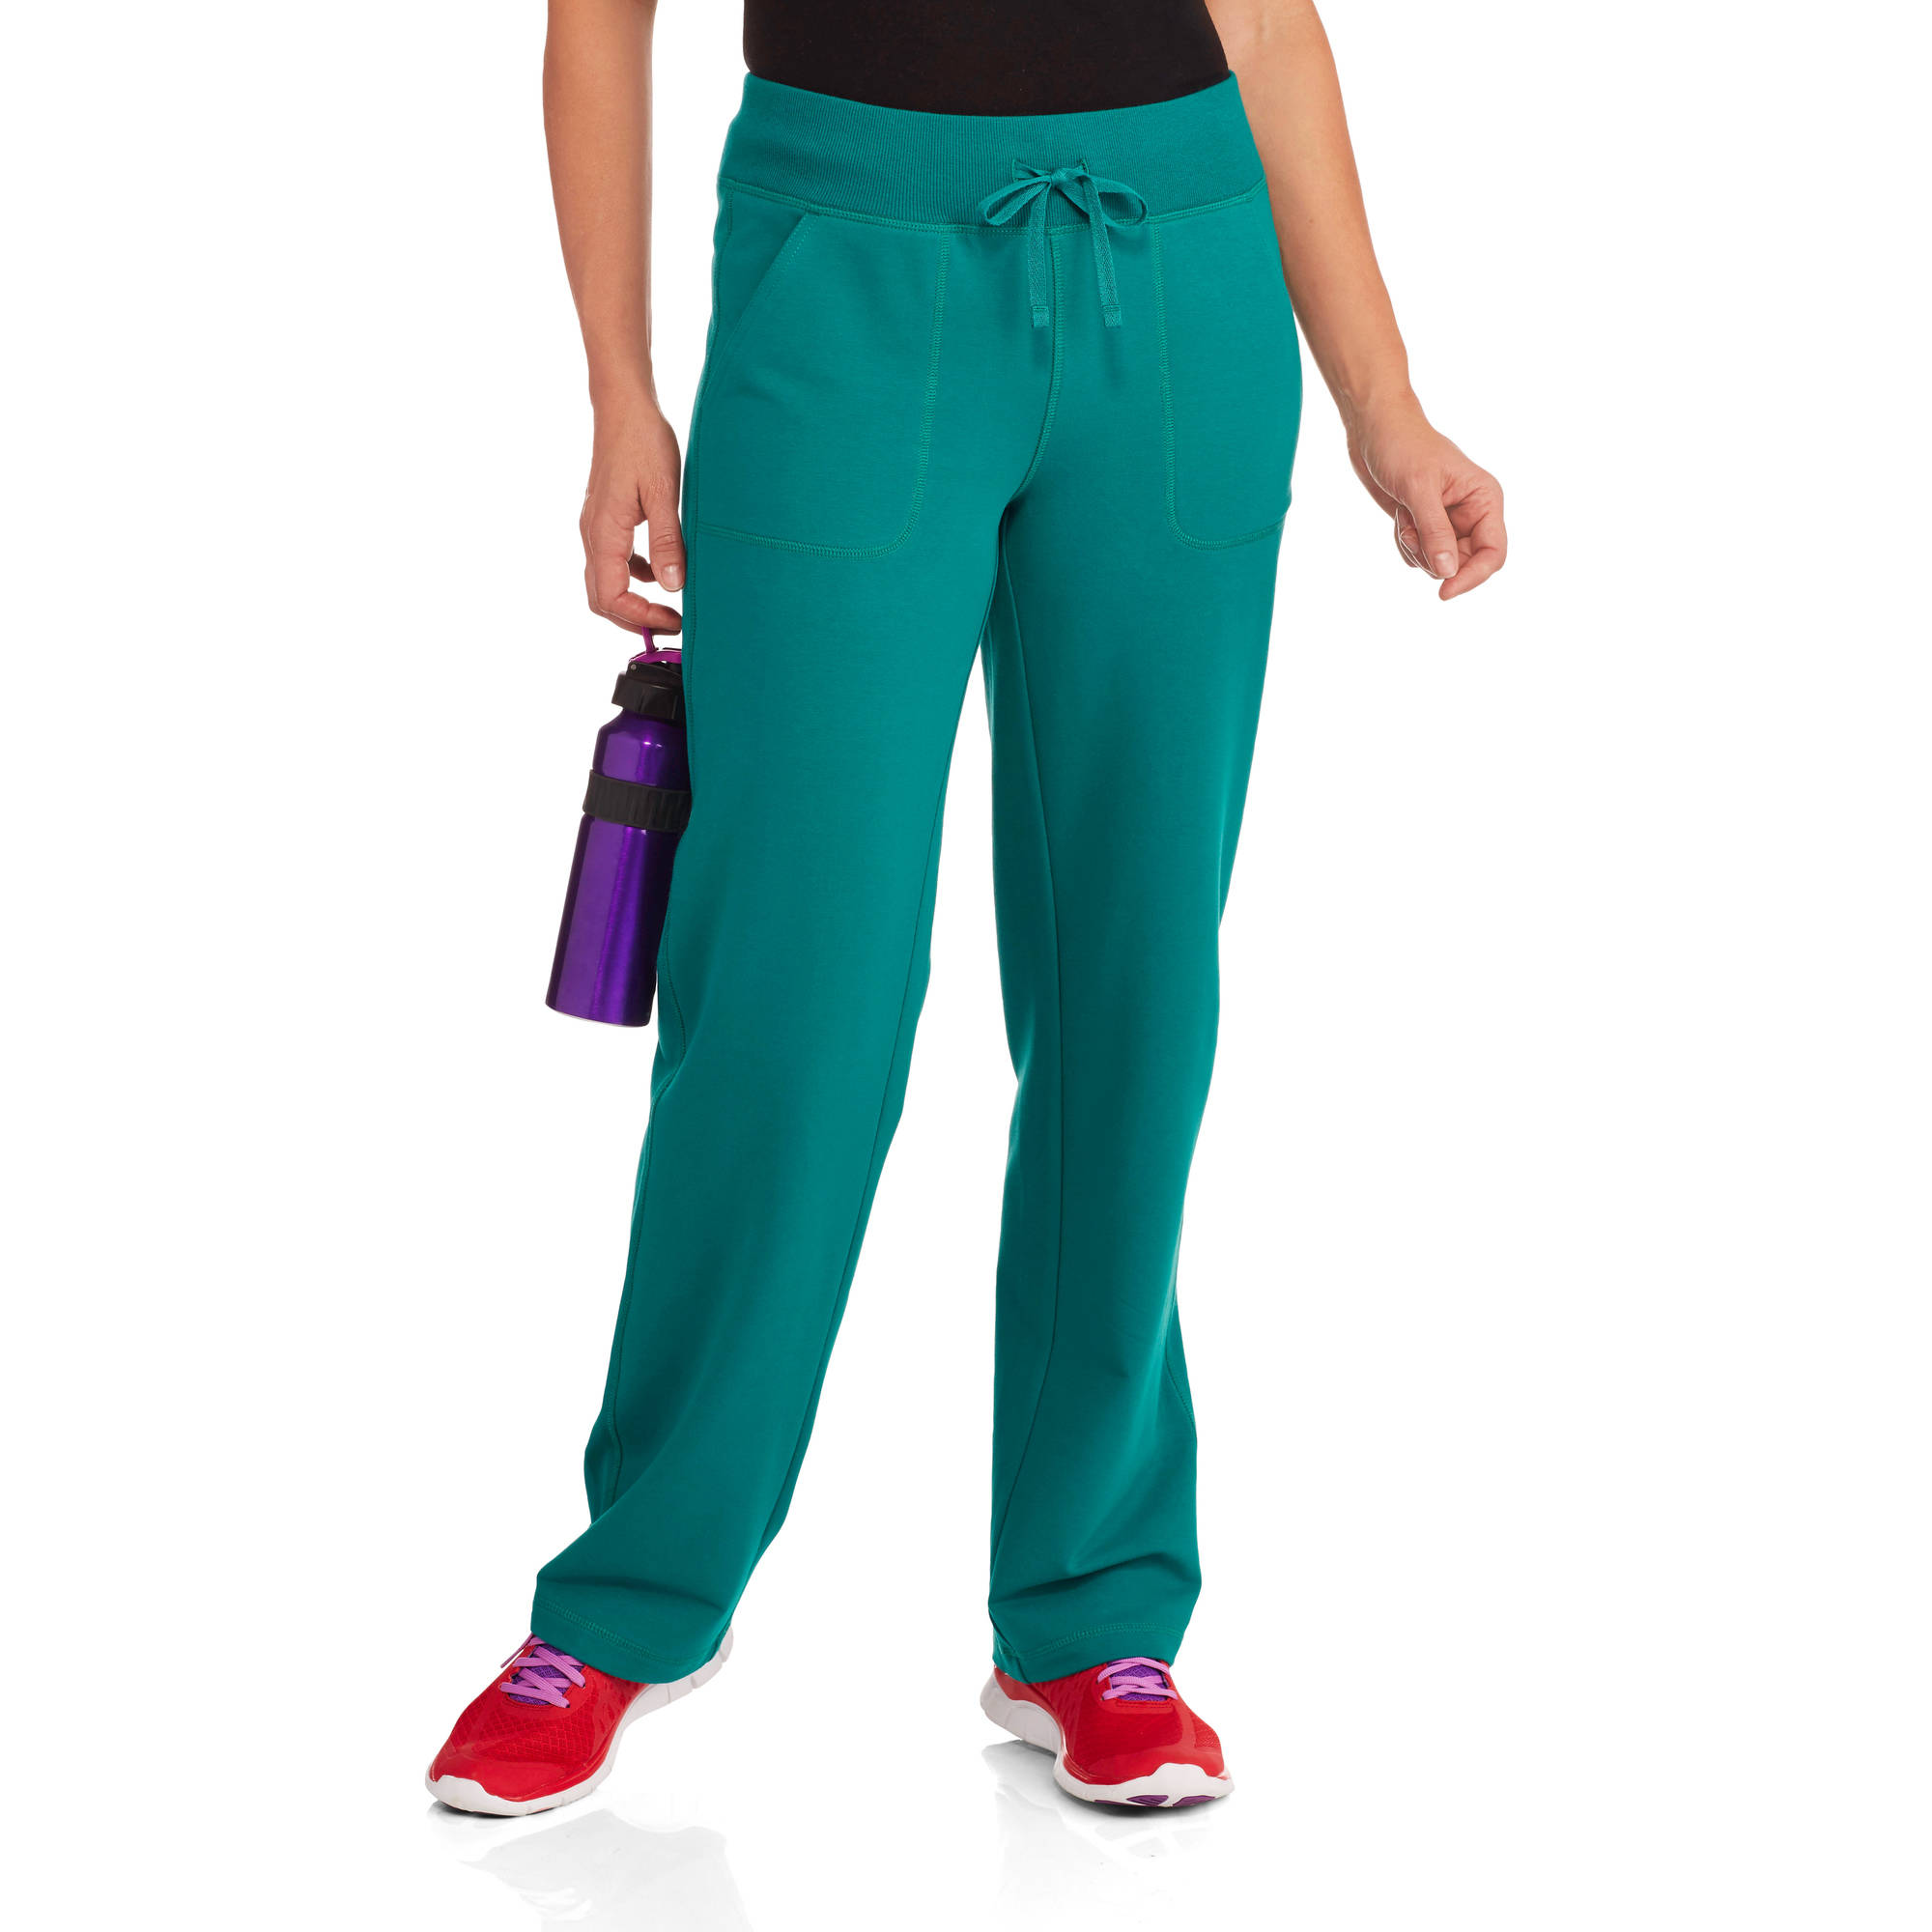 Danskin Now Women's French Terry Athletic Pants--Available in Regular and Petite Lengths